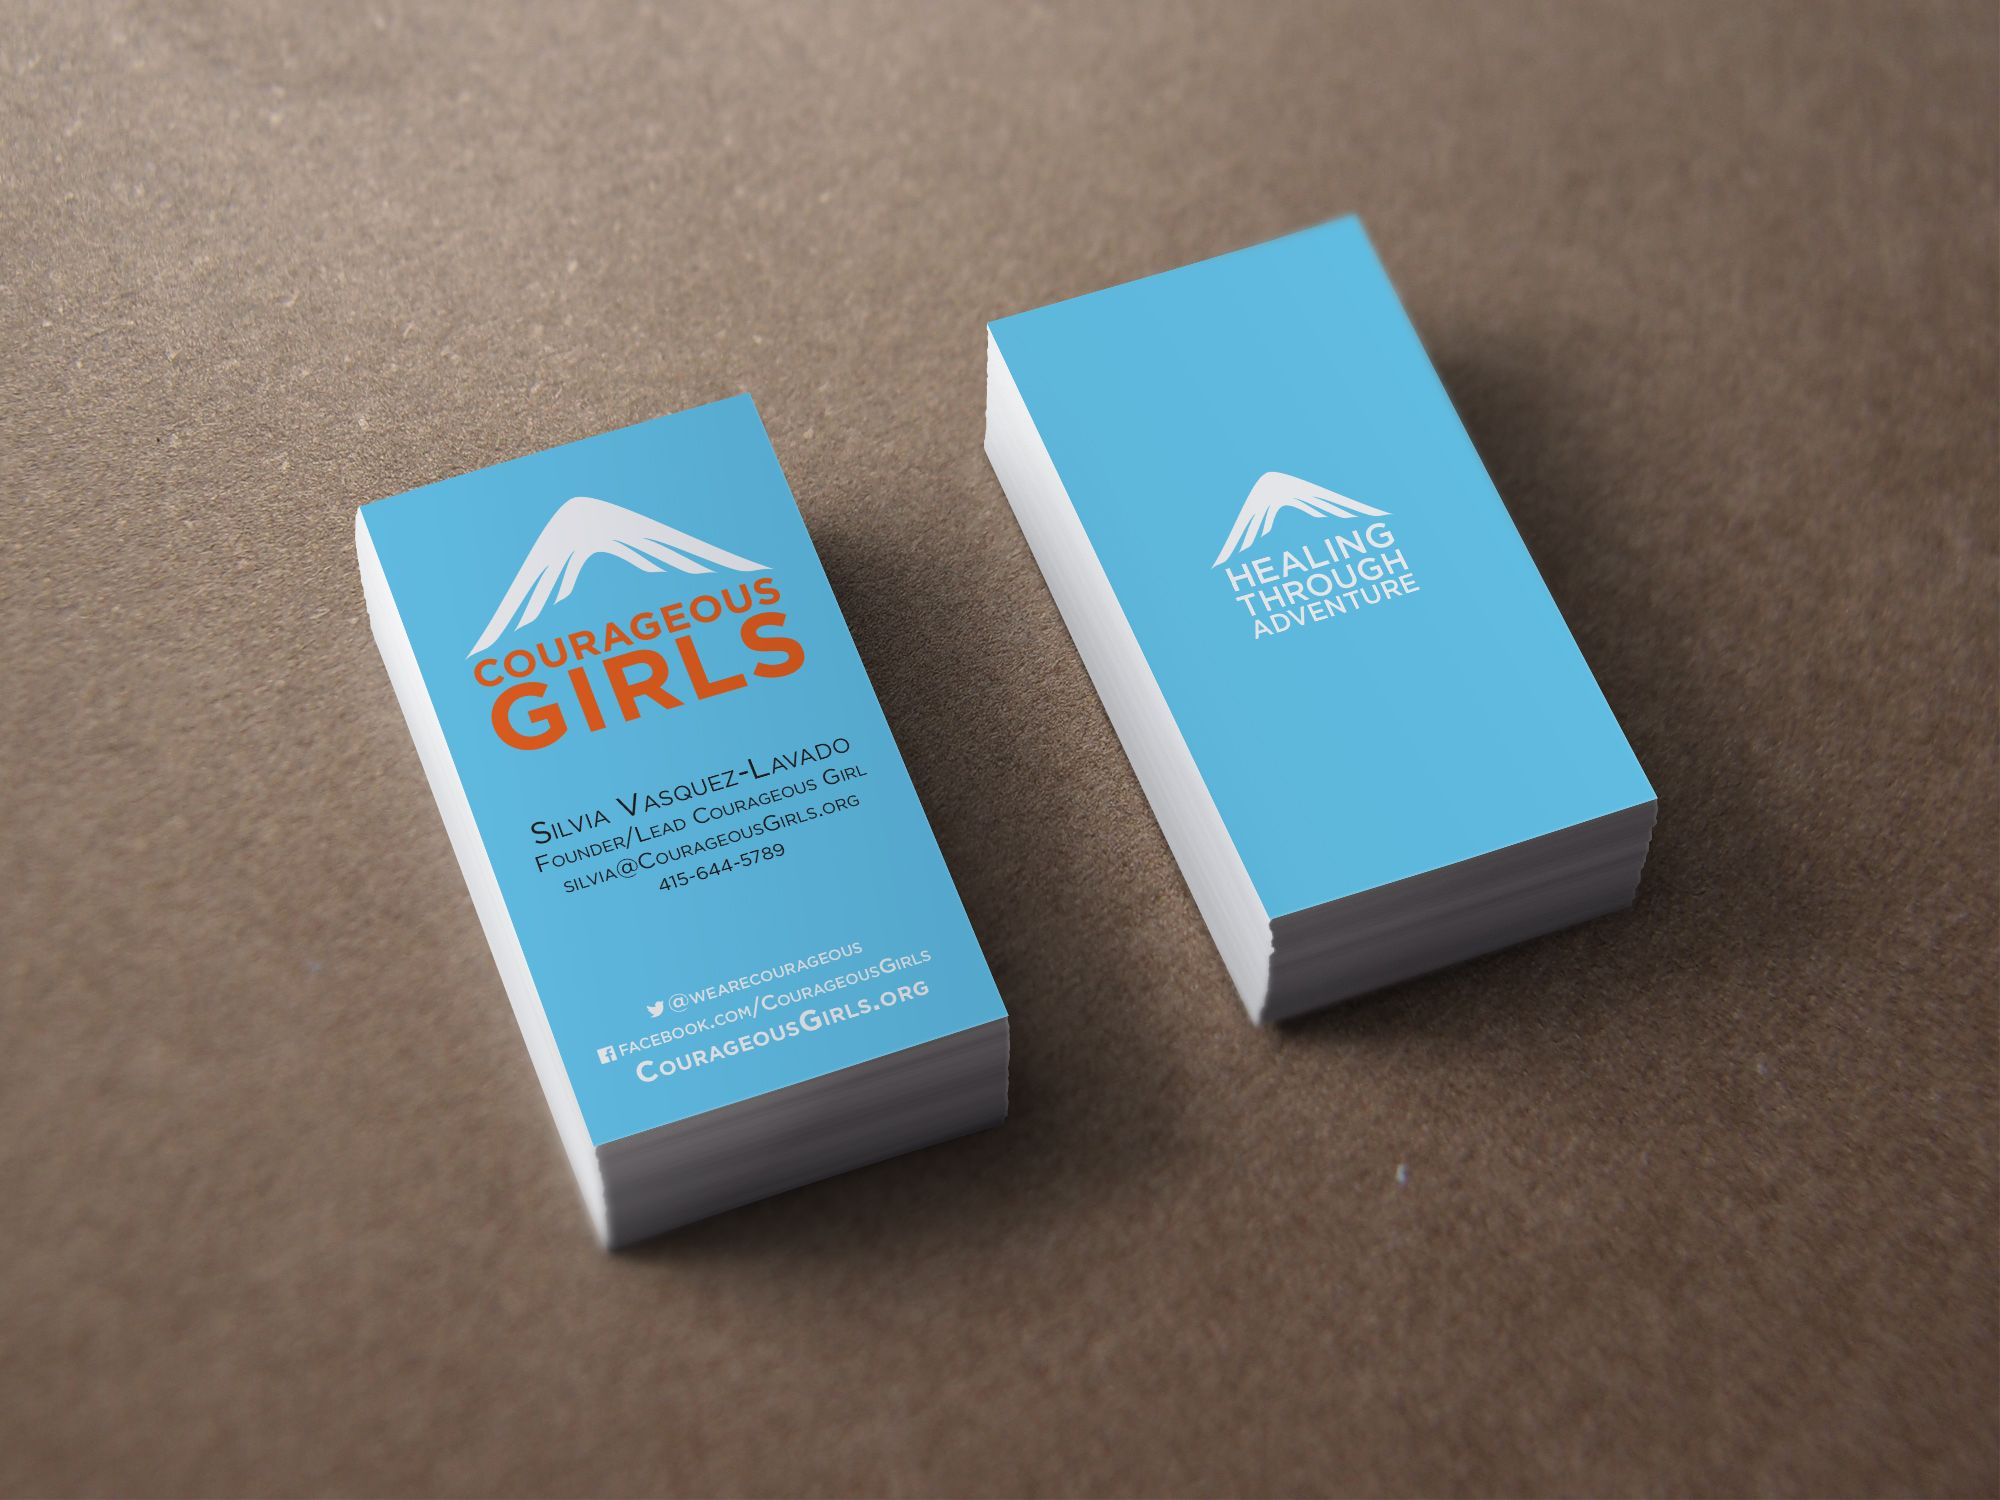 Business Cards For Courageousgirls Org An Organization The Helps